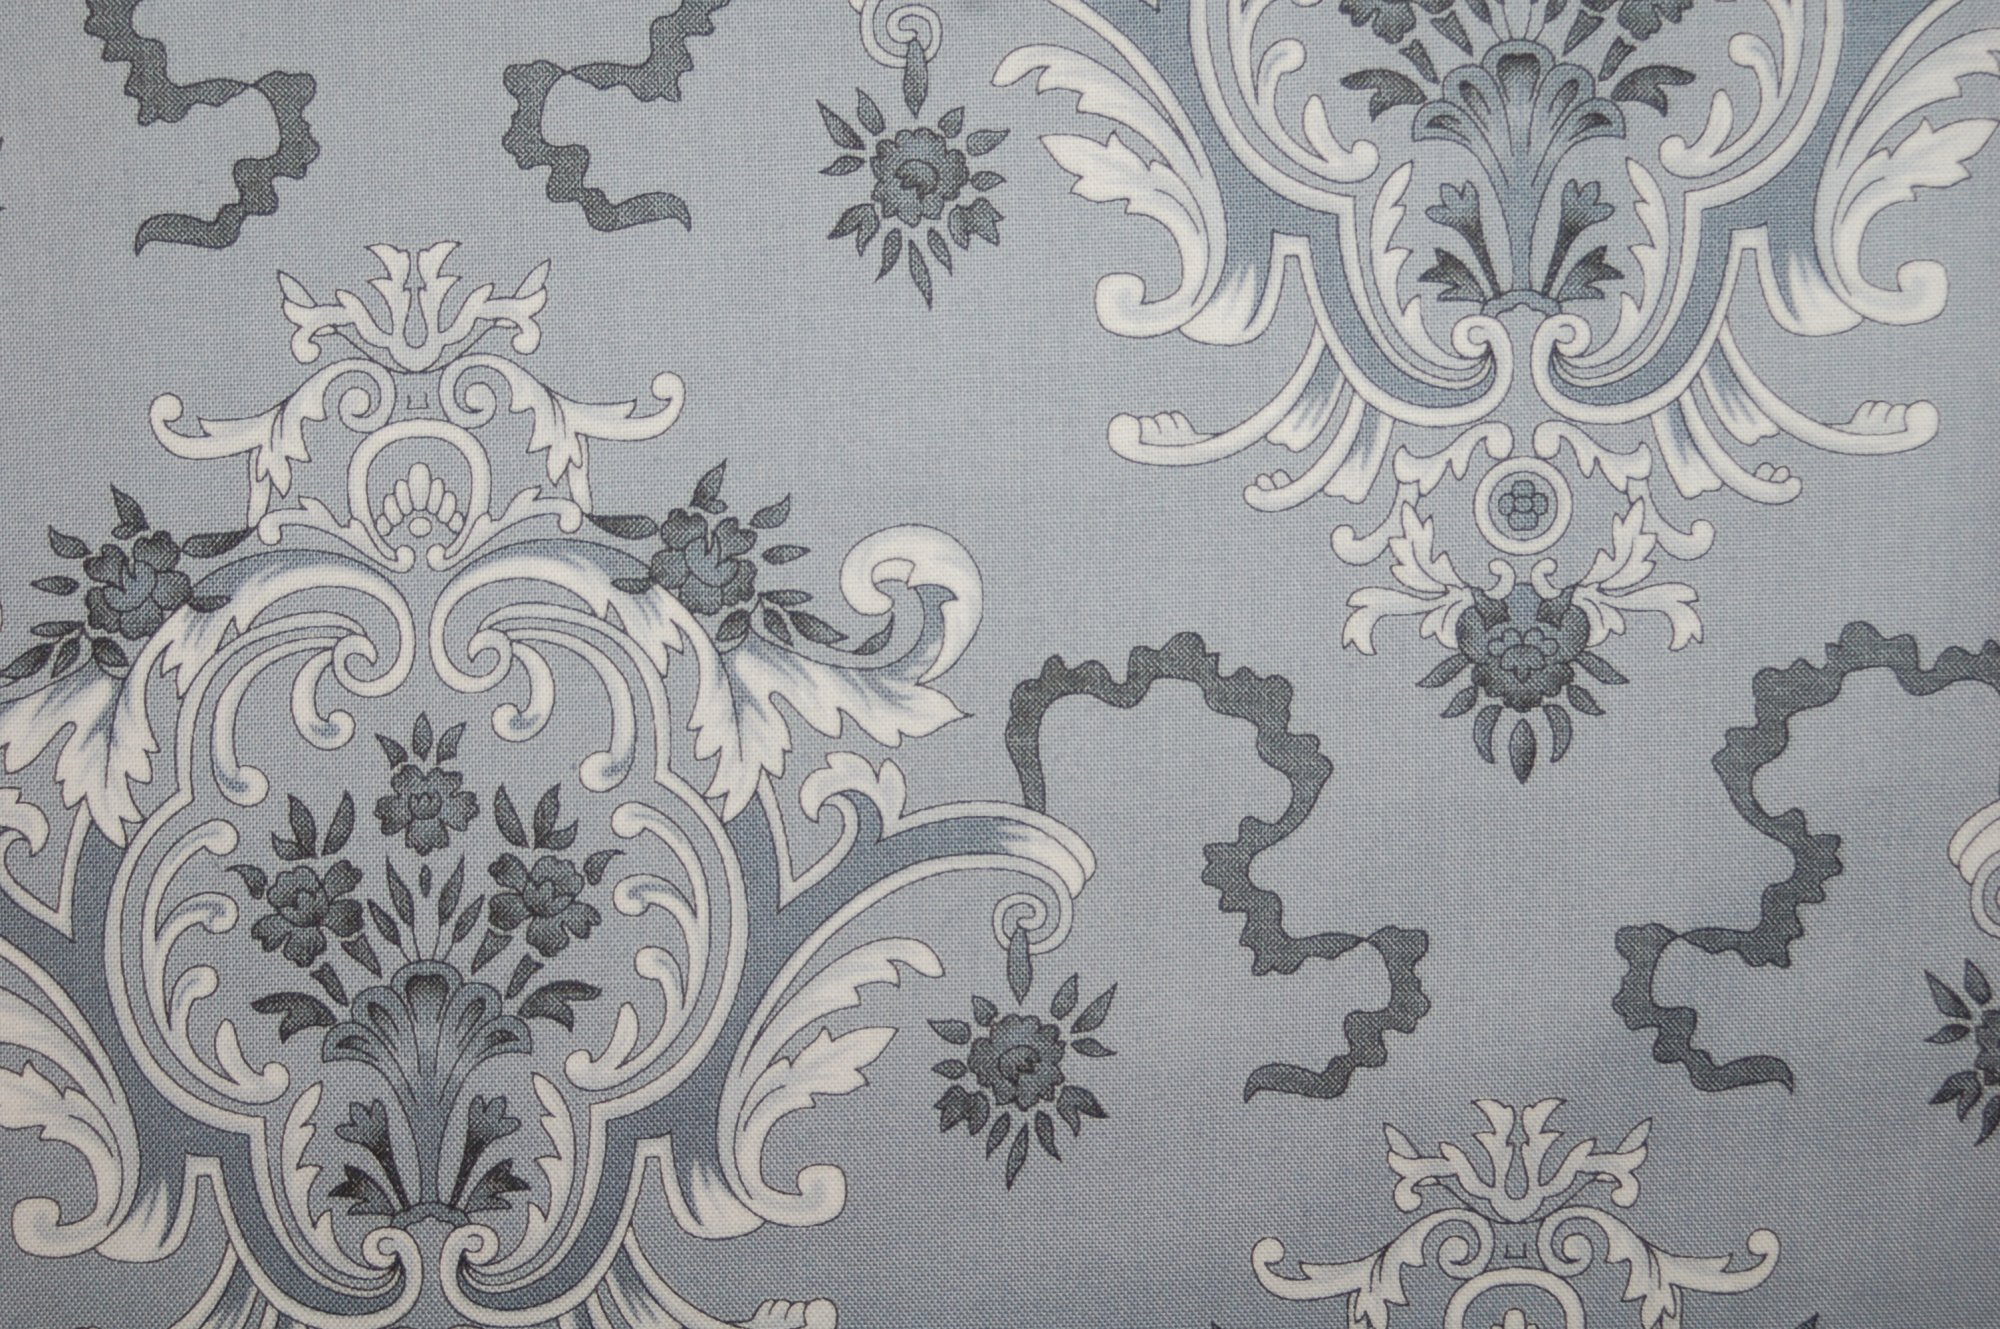 Candelabra - Eerie Toile (Crow) from Verna Mosquera for Free Spirit Designs